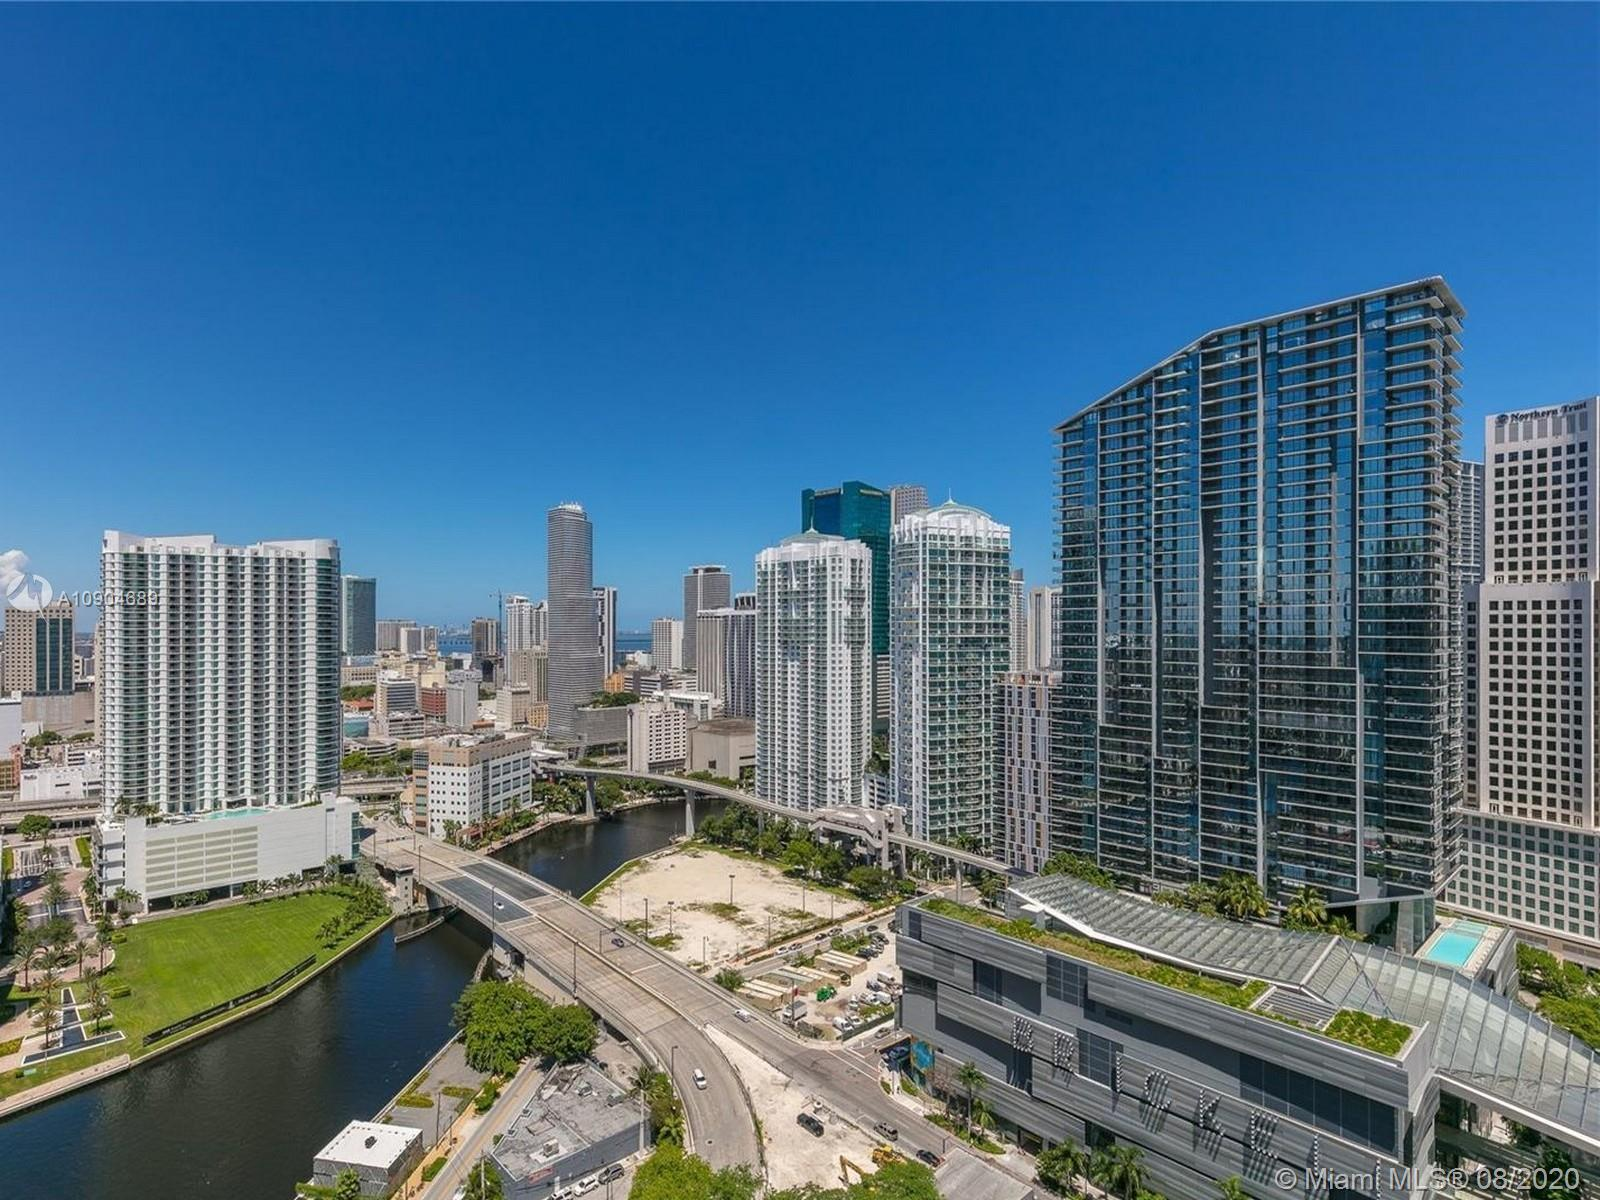 Rise Brickell City Centre #2612 - 88 SW 7th St #2612, Miami, FL 33130